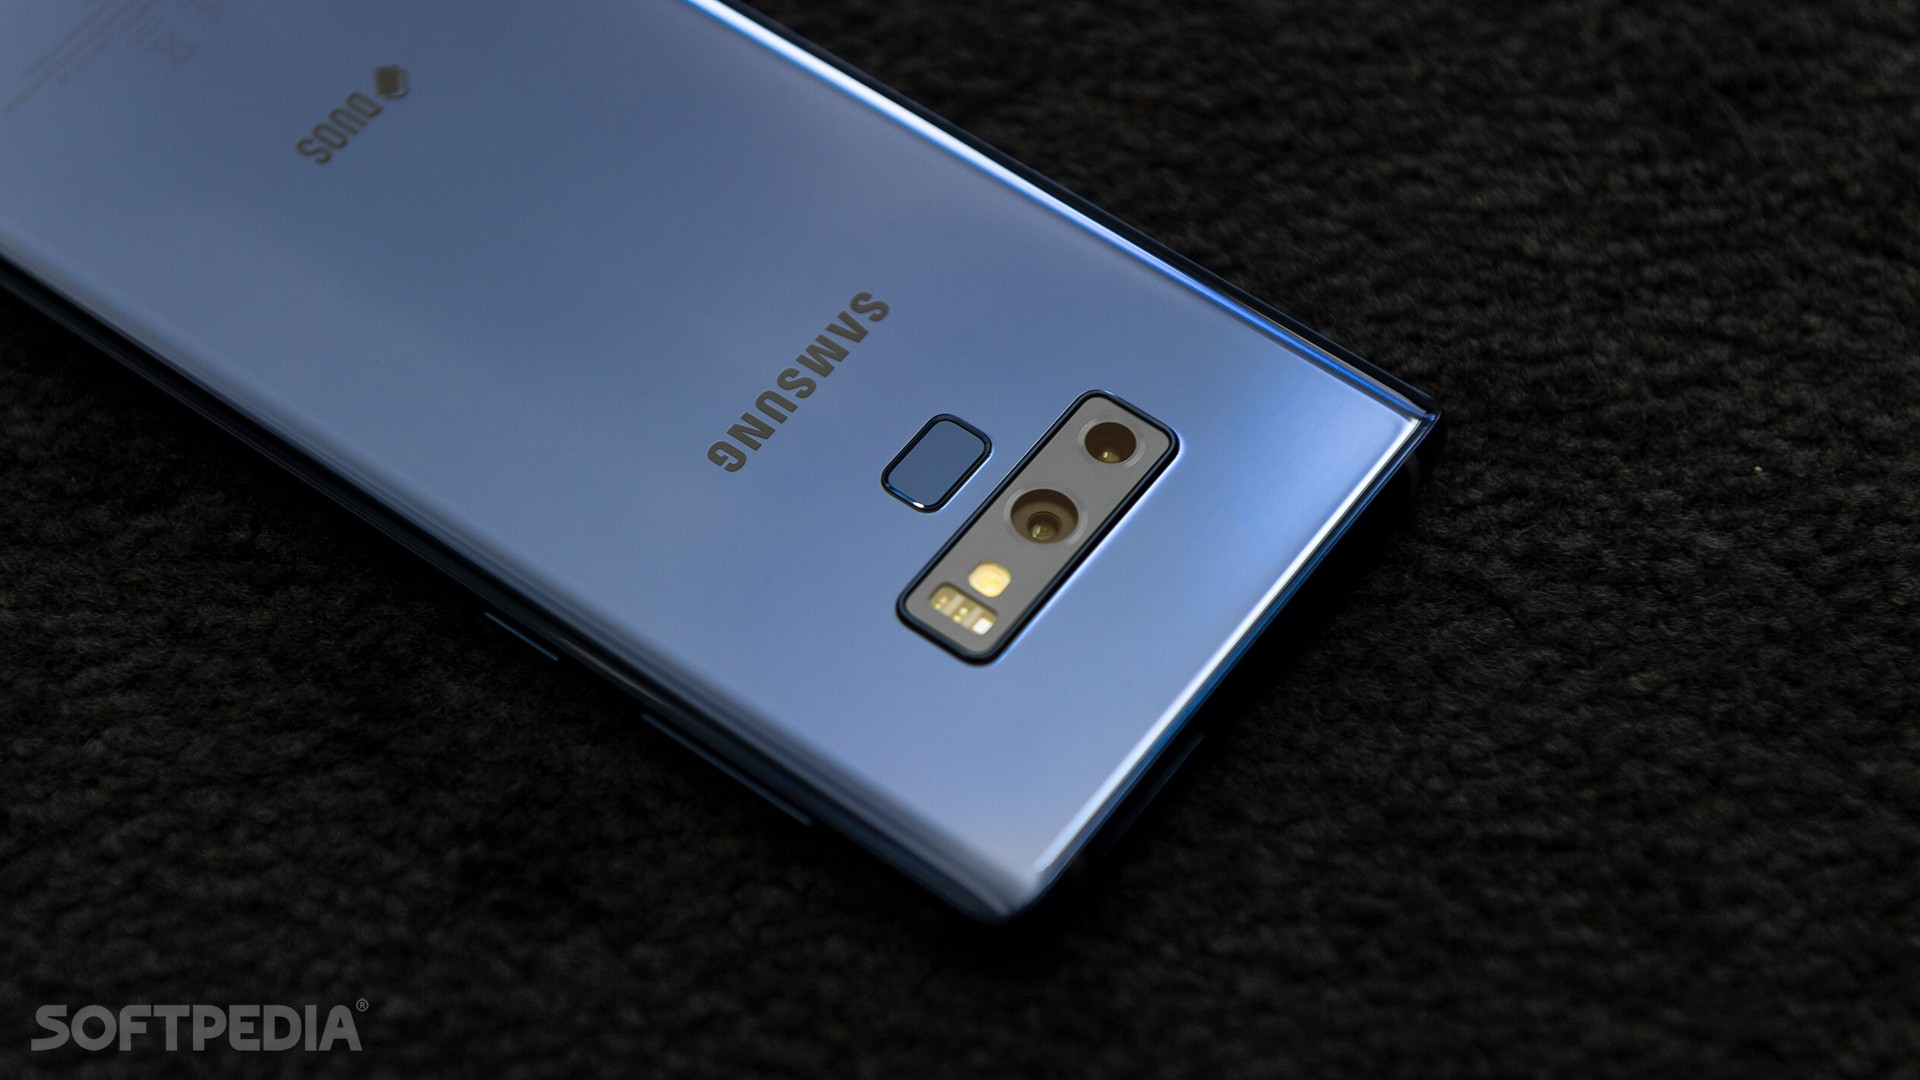 How to Set Up Fingerprint Sensor Gestures on the Samsung Galaxy Note 9